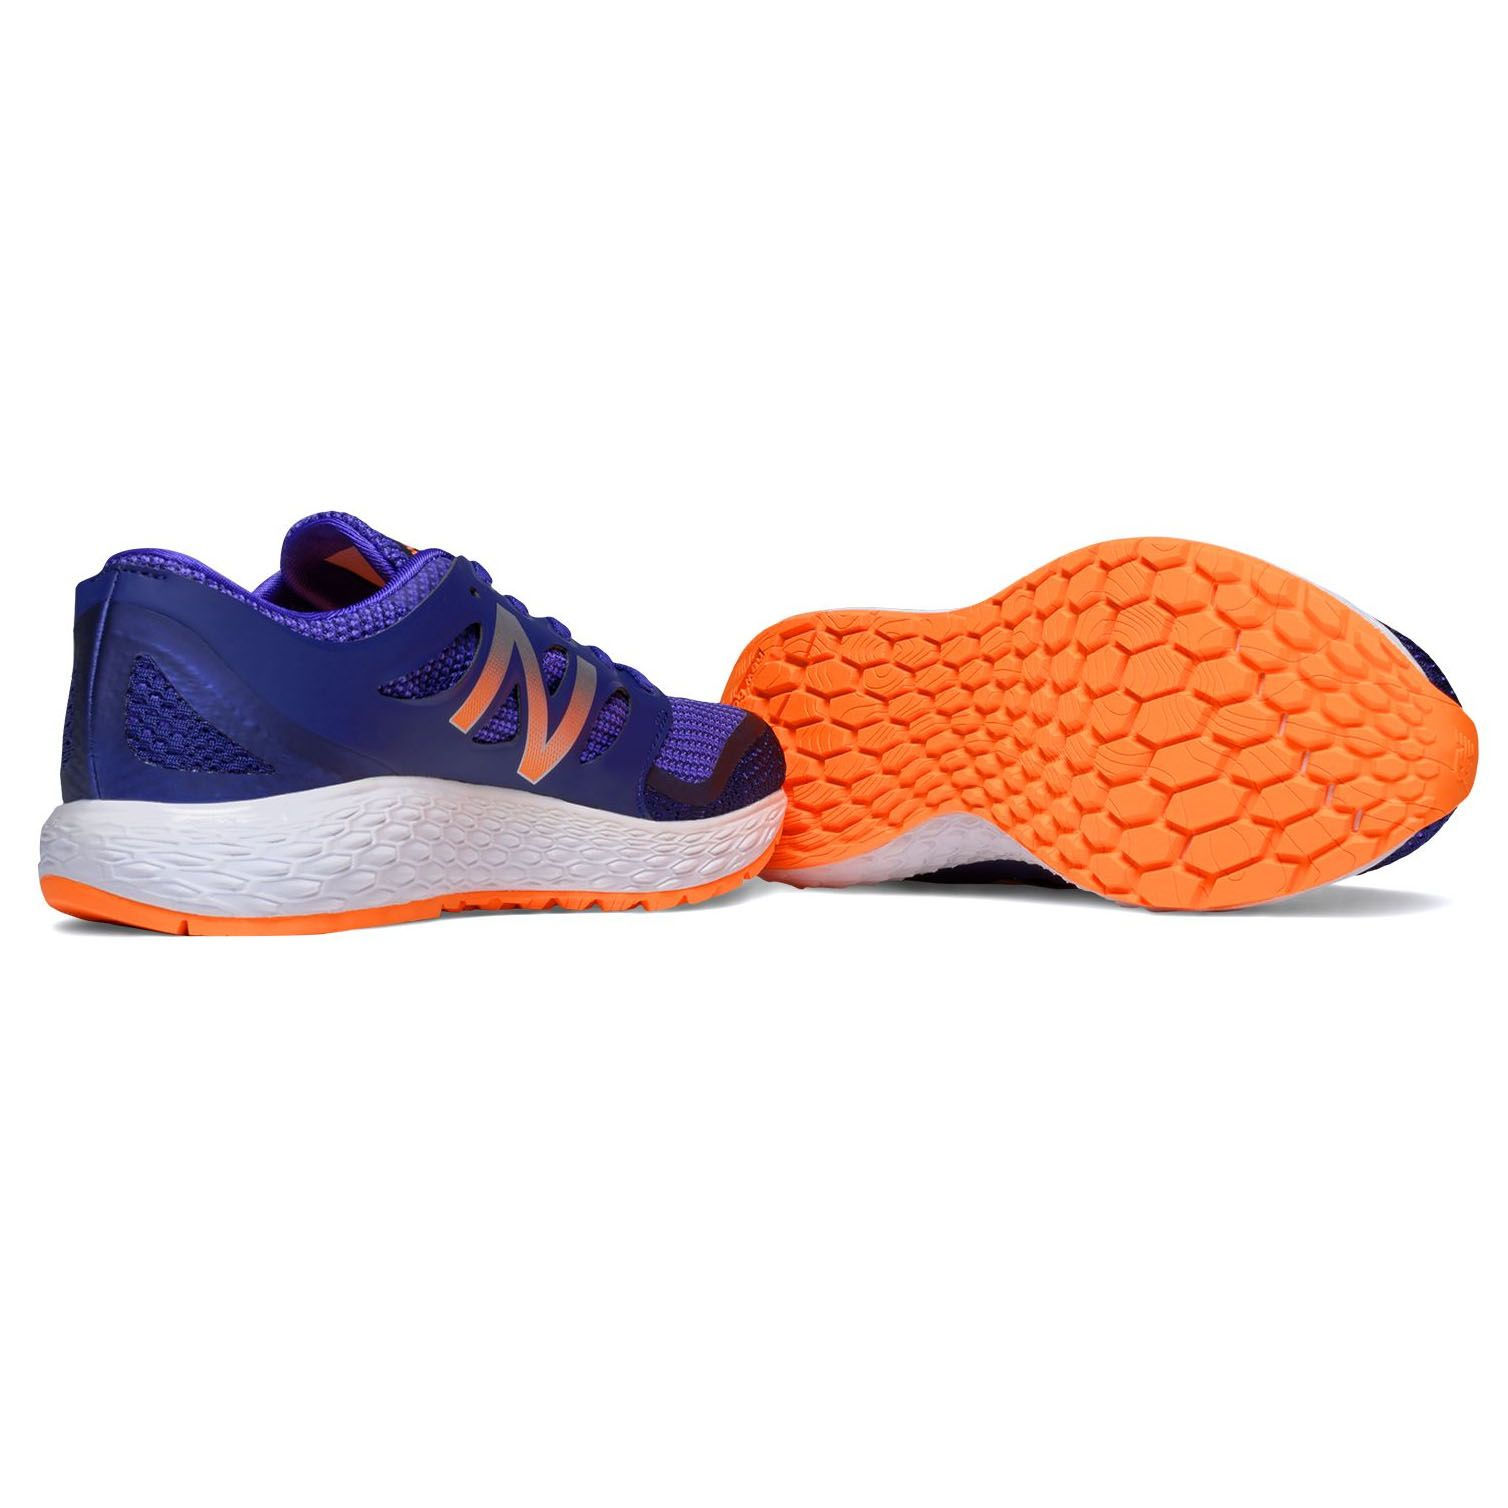 Natural Running Shoes Review